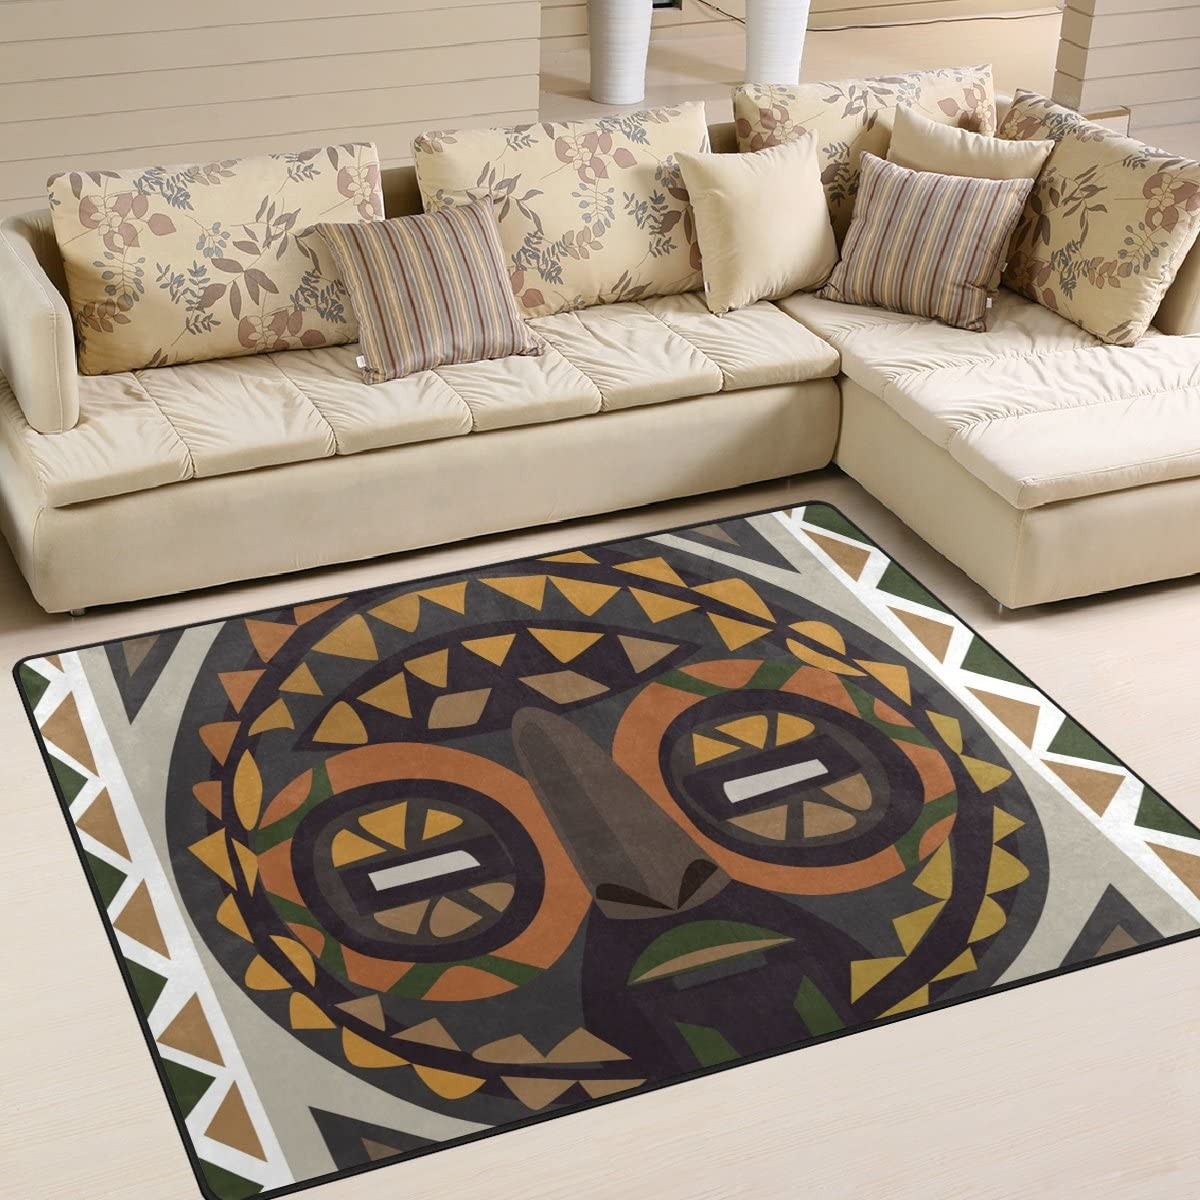 SAVSV Large Area Rugs African Mask Printed,Lightweight Water-Repellent Floor Carpet for Living Room Bedroom Home Deck Patio,6 8 x 4 10